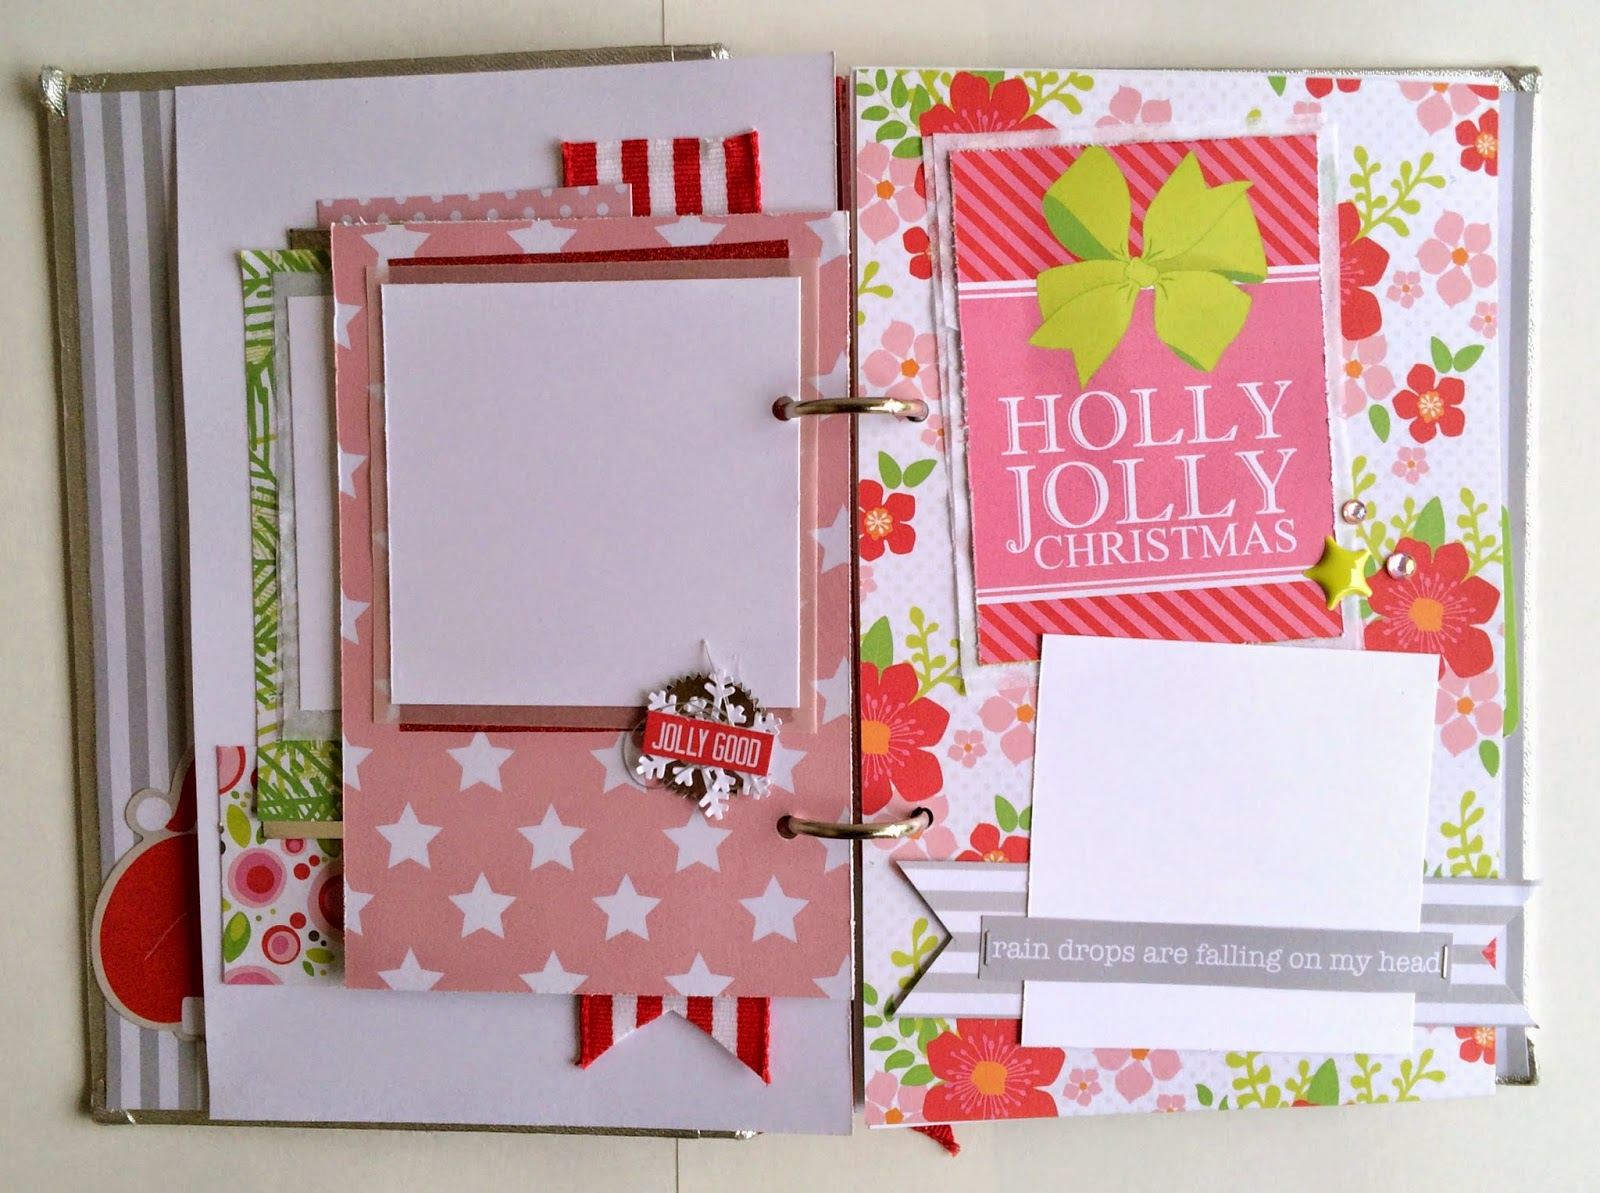 Tessa Buys Chickaniddy Crafts December Mini Album page 2